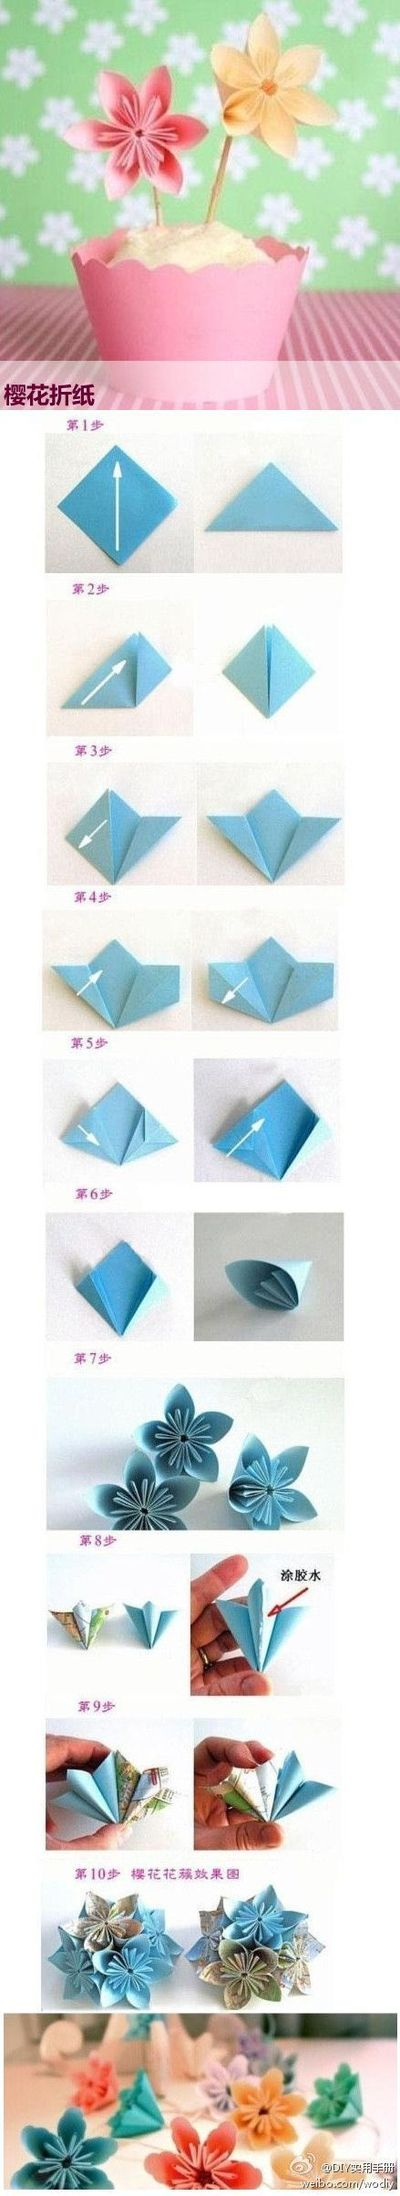 Flower Origami Origami Paper Making Paper Folding Japane